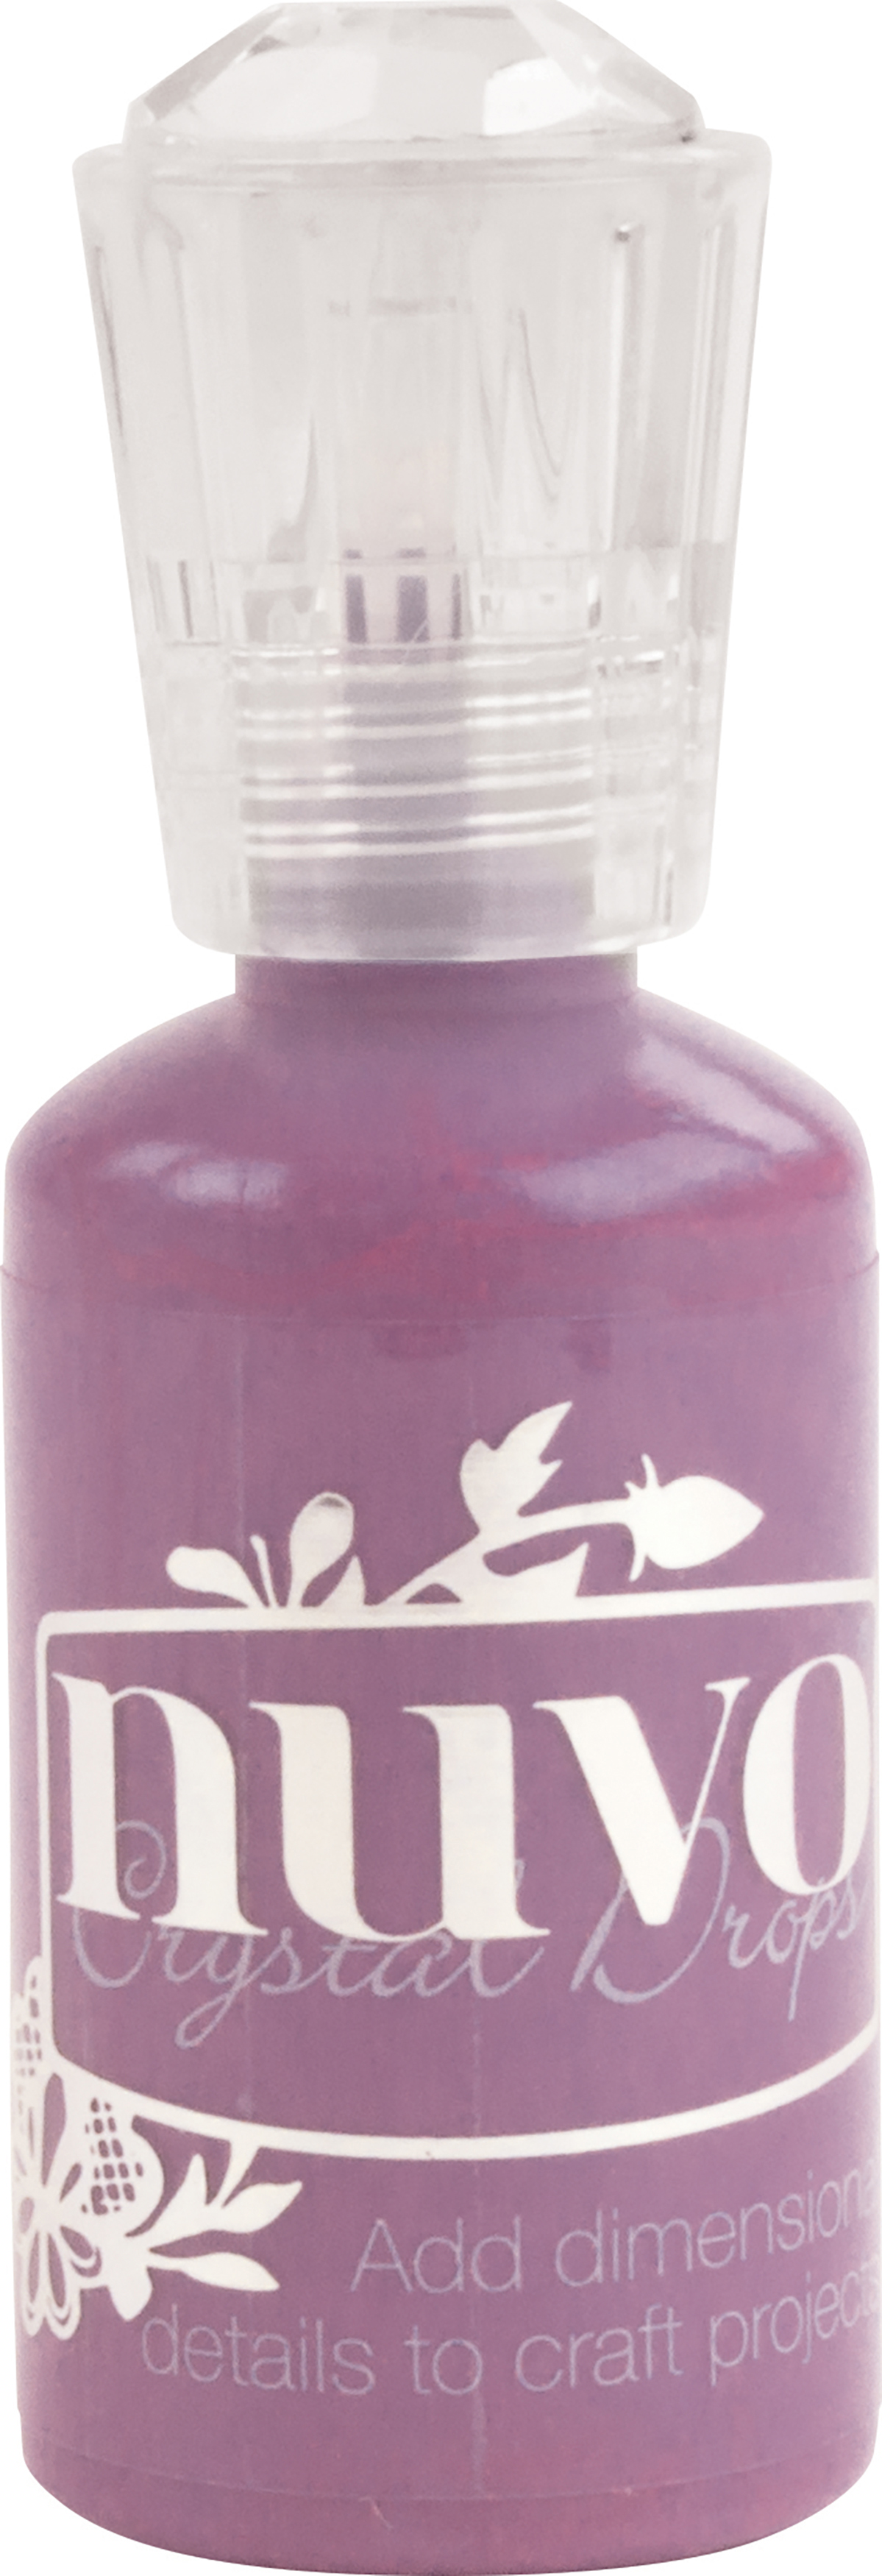 Nuvo - Plum Pudding